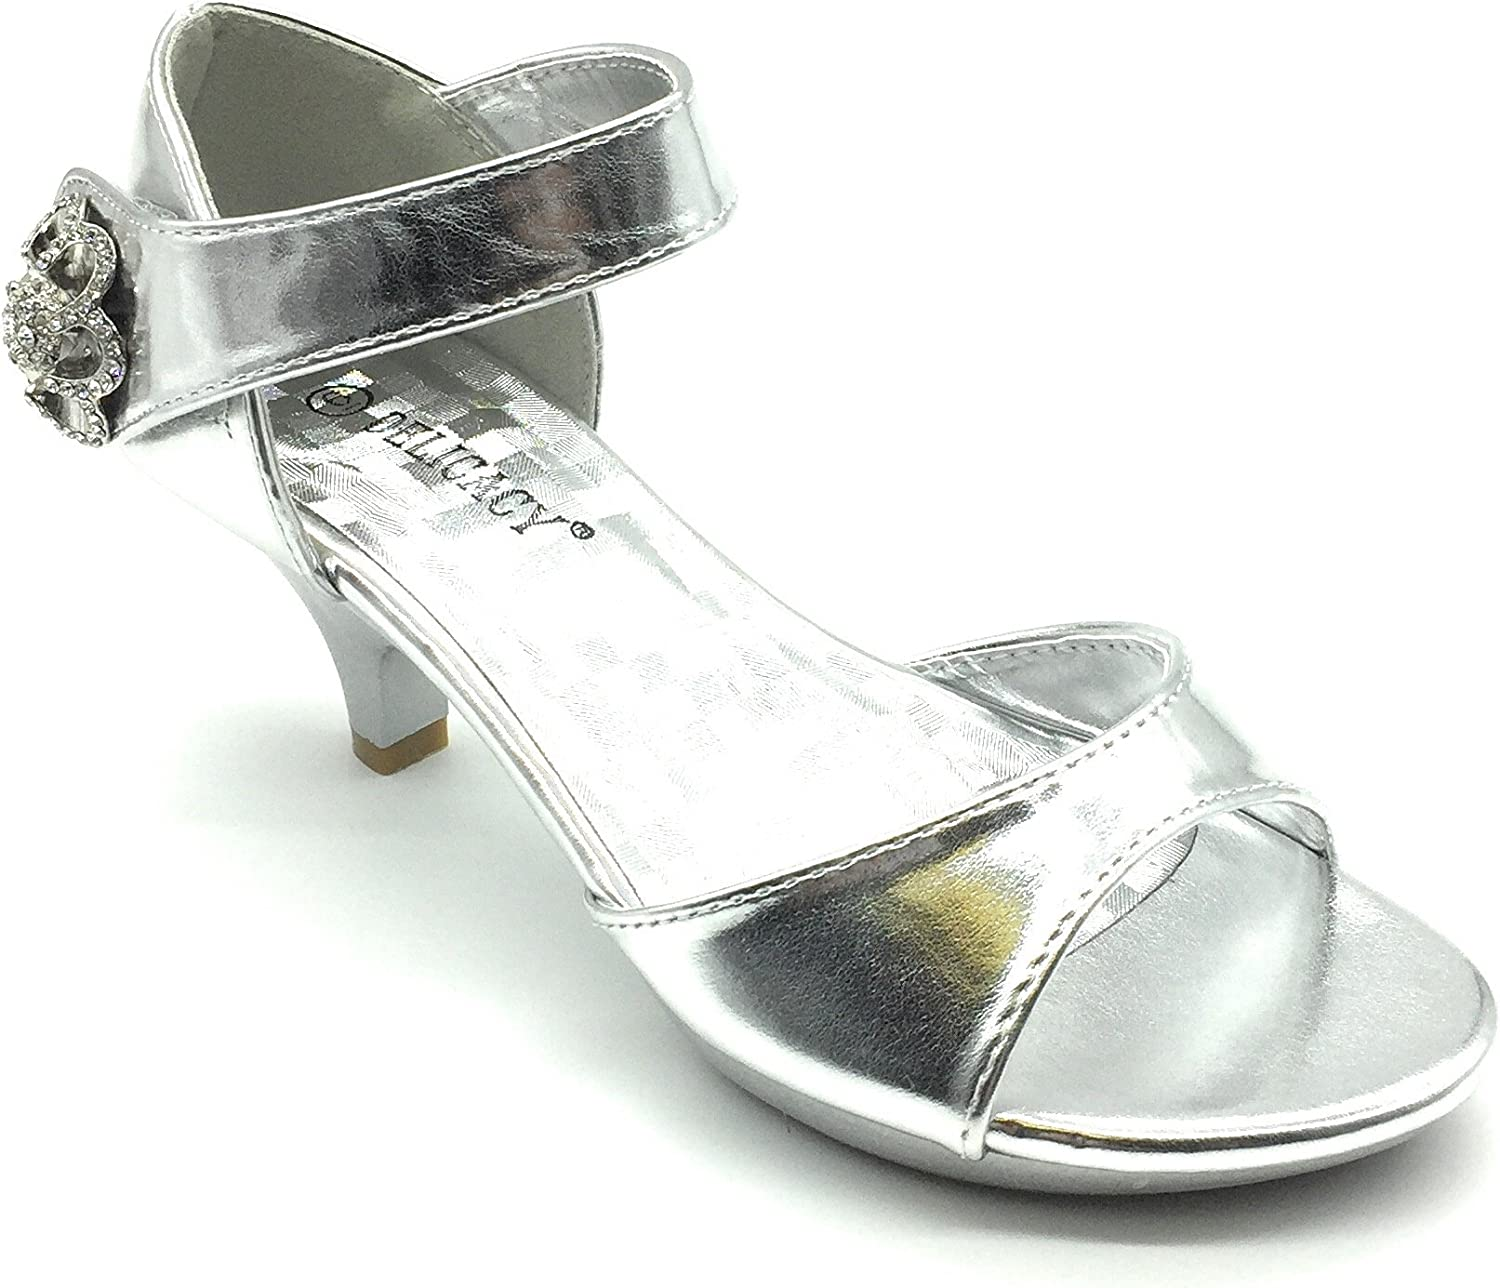 ShoeShoe Angel Collection Womens Strappy Rhinestone Prom Dress Party  Evening Wedding Sandal Low Heel Shoes, Silver 8.5